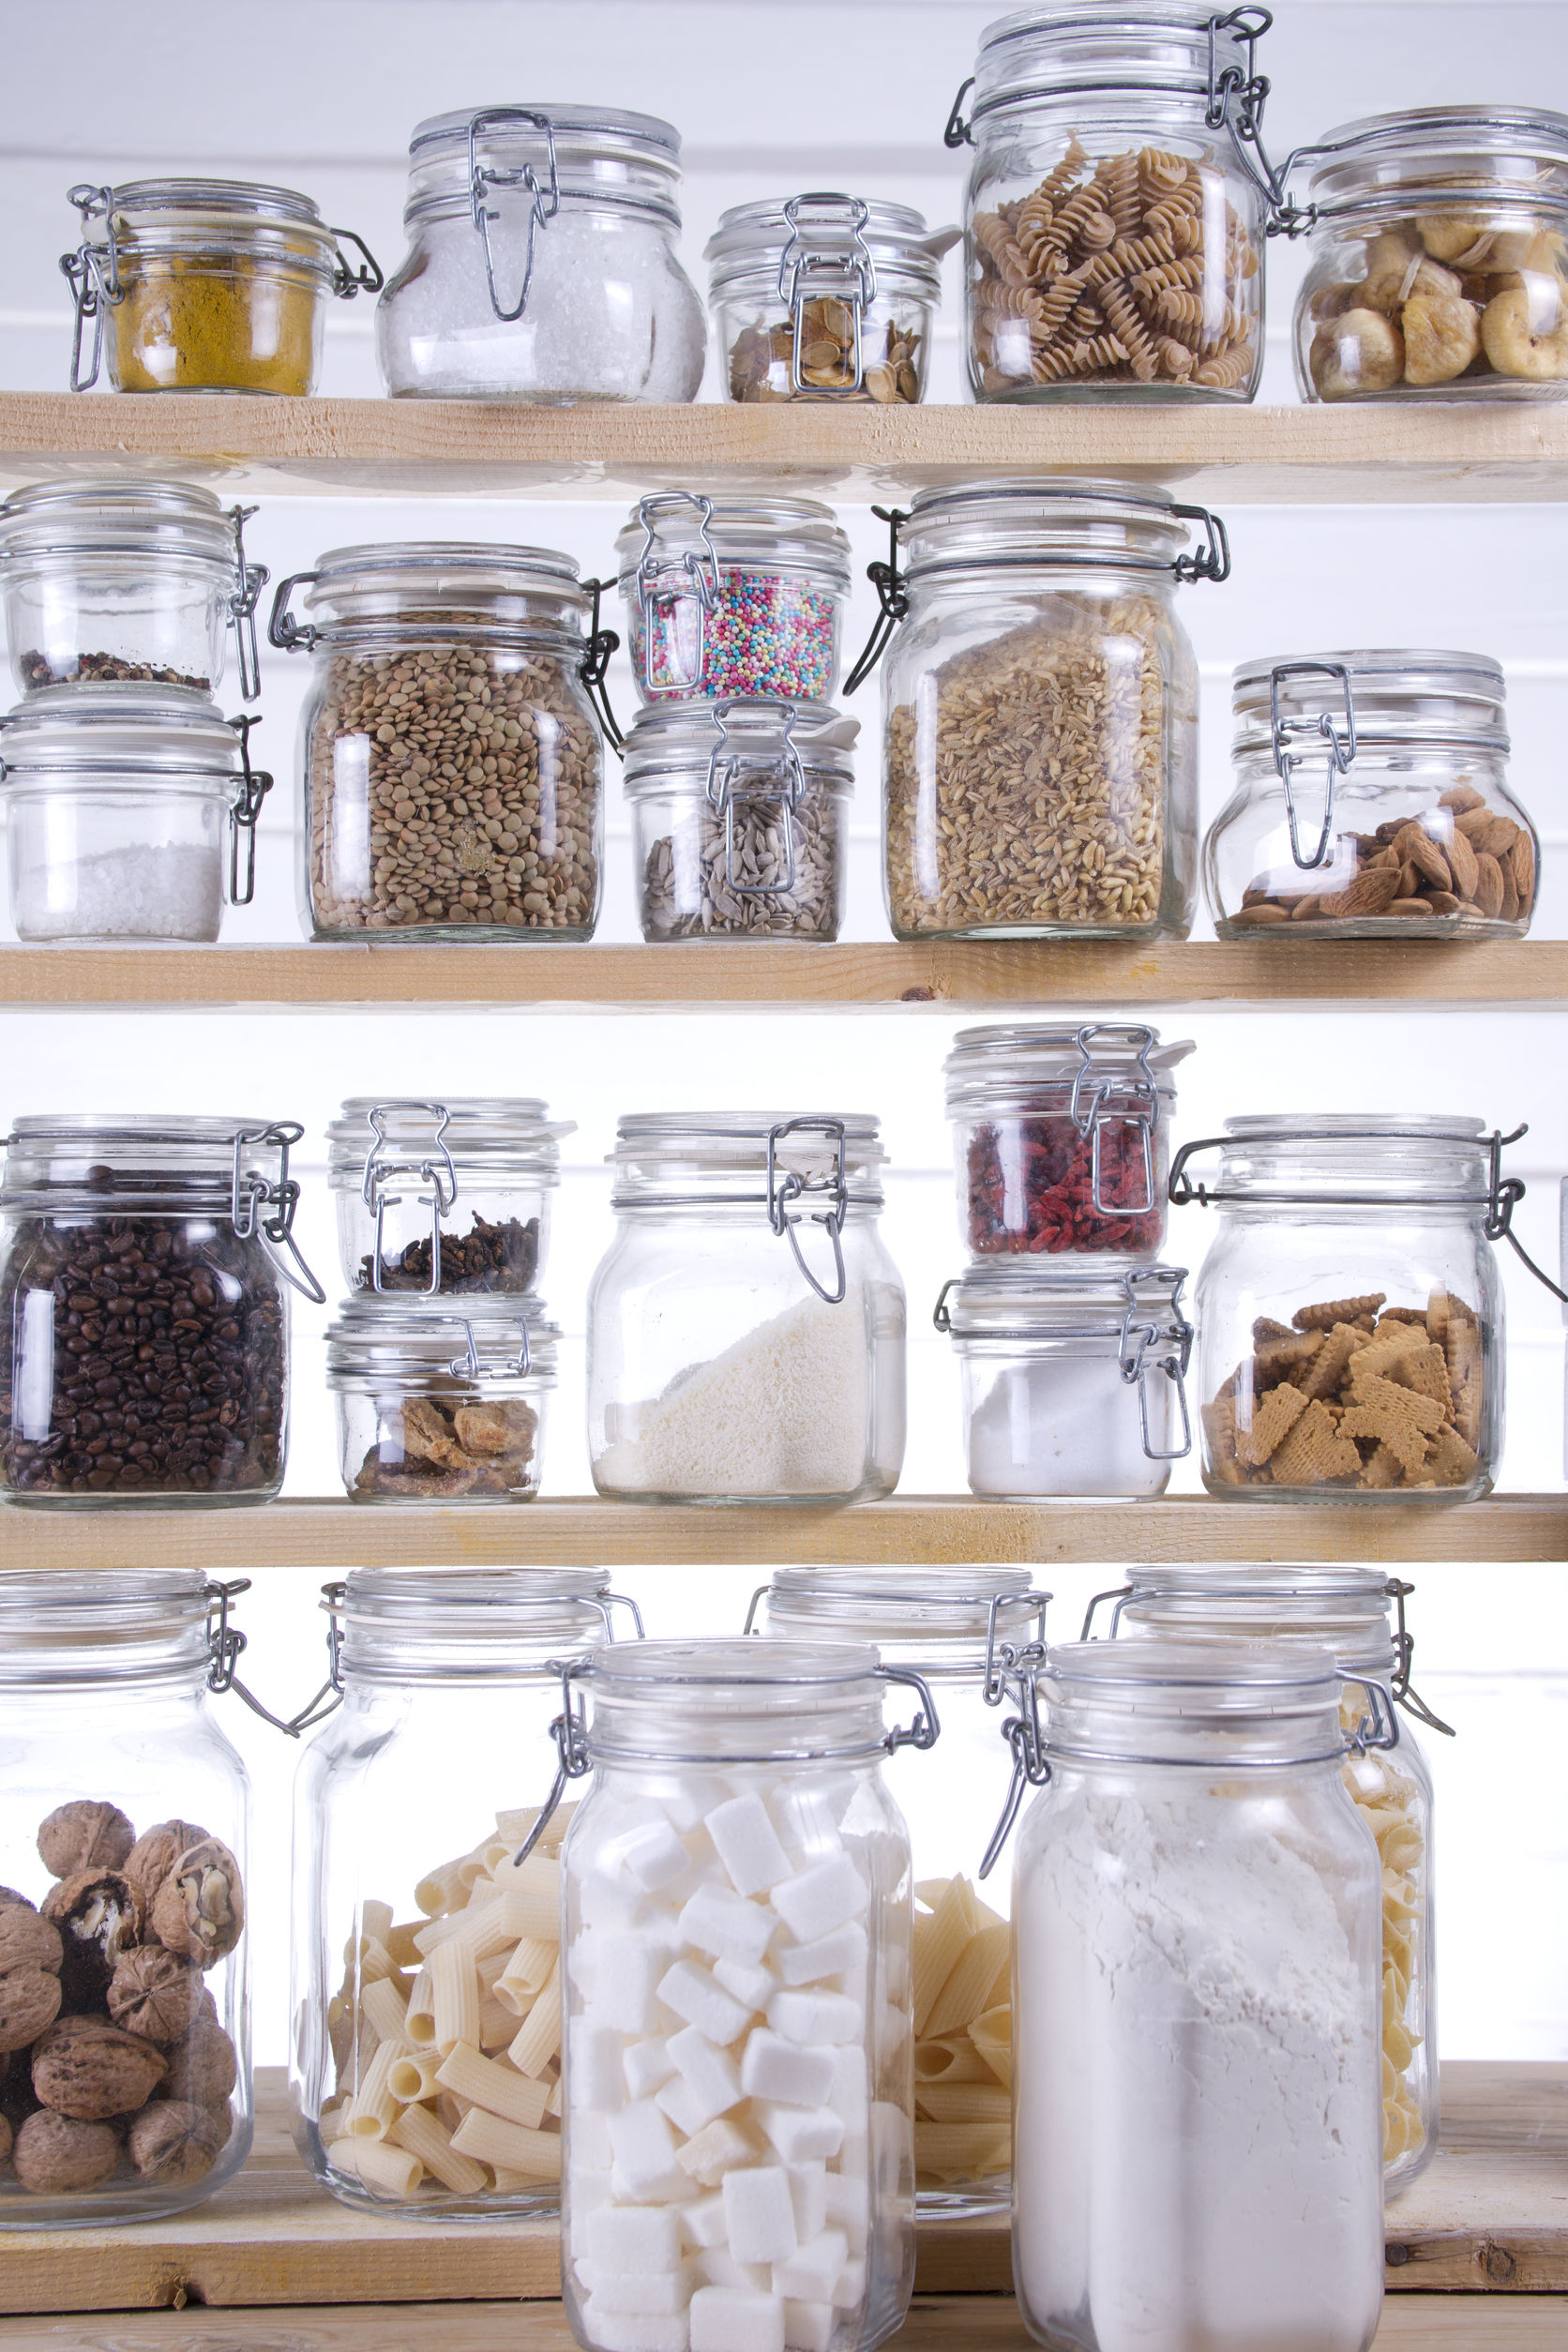 Small Pantry with containers